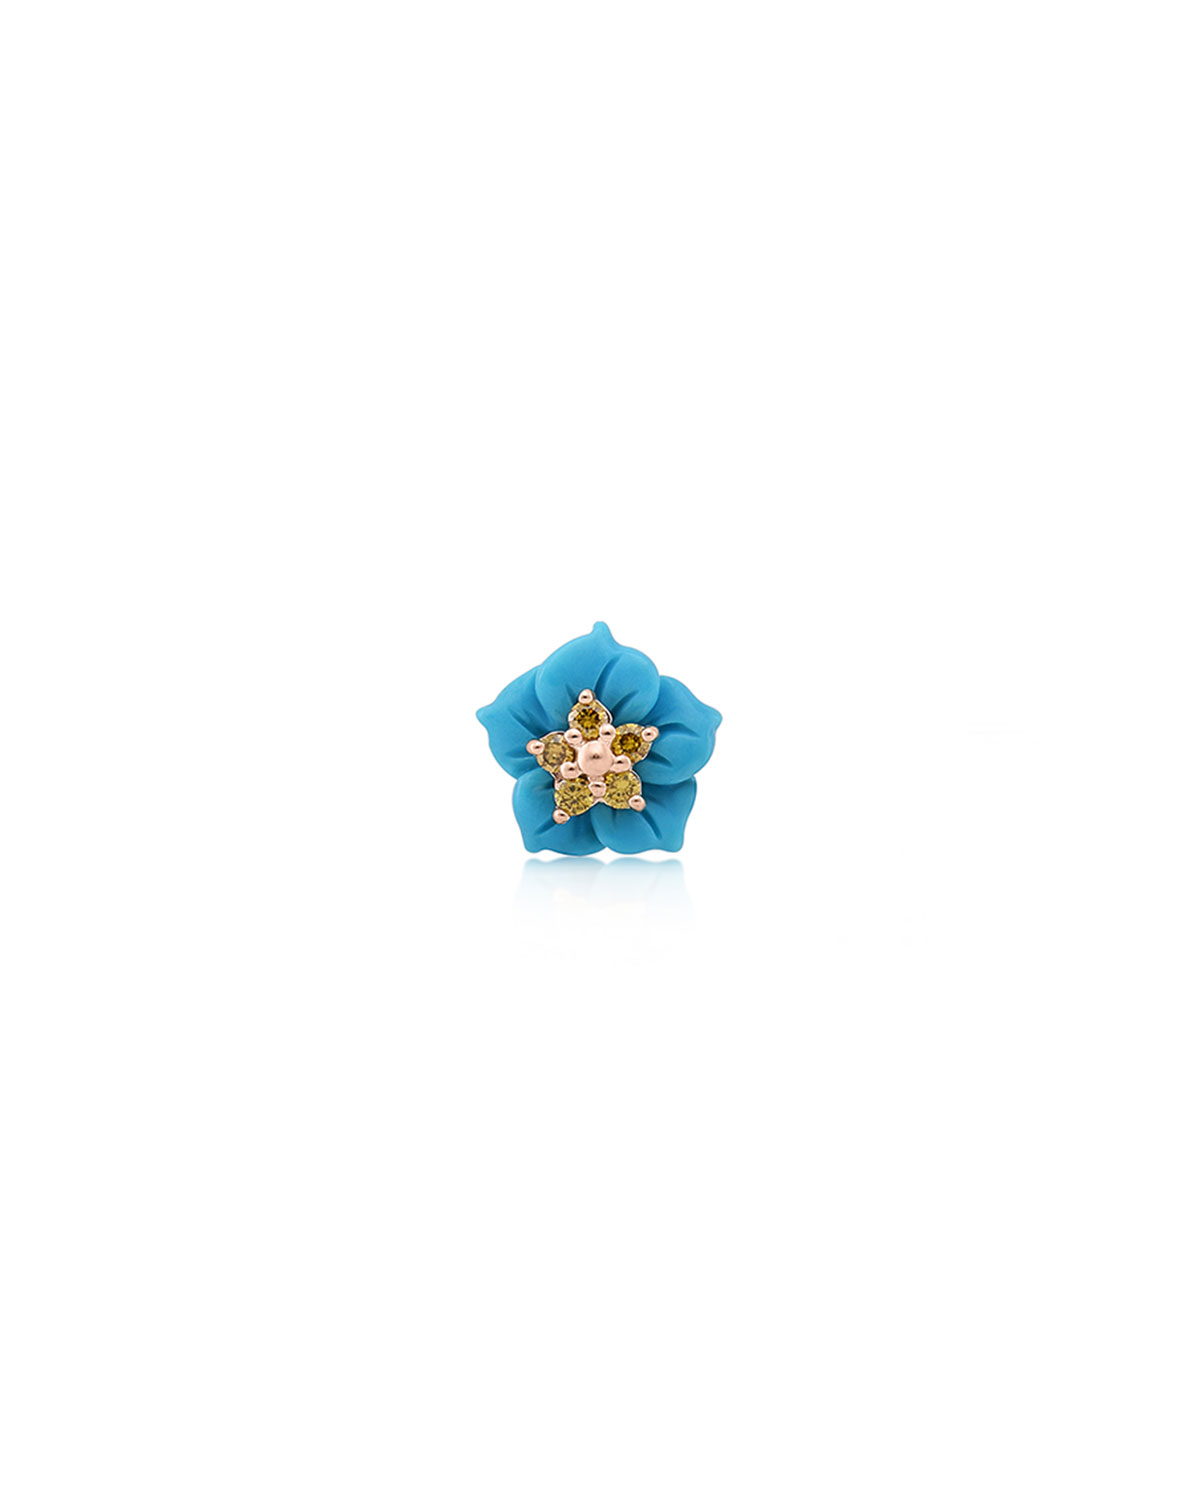 Stevie Wren 14k Rose Gold Carved Turquoise Flower Stud with Yellow Diamonds, Single